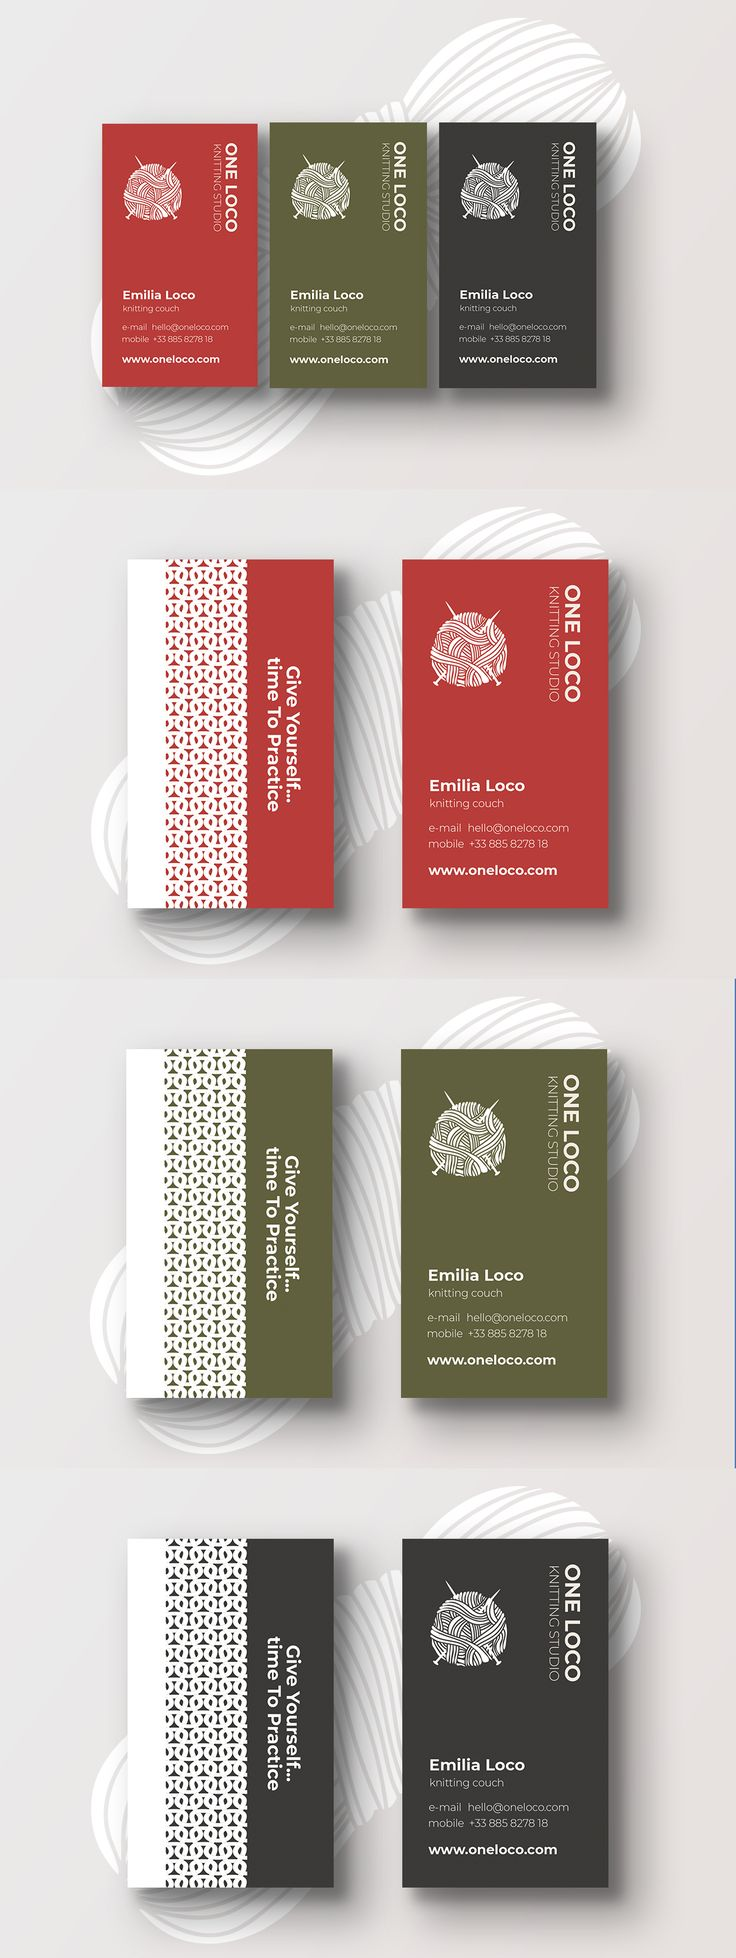 Hey guys... have a look at my latest work: it's a cool minimalistic business card for a Knitting Studio so this might be just the thing you're looking for your clients.Enjoy and Happy New Year!